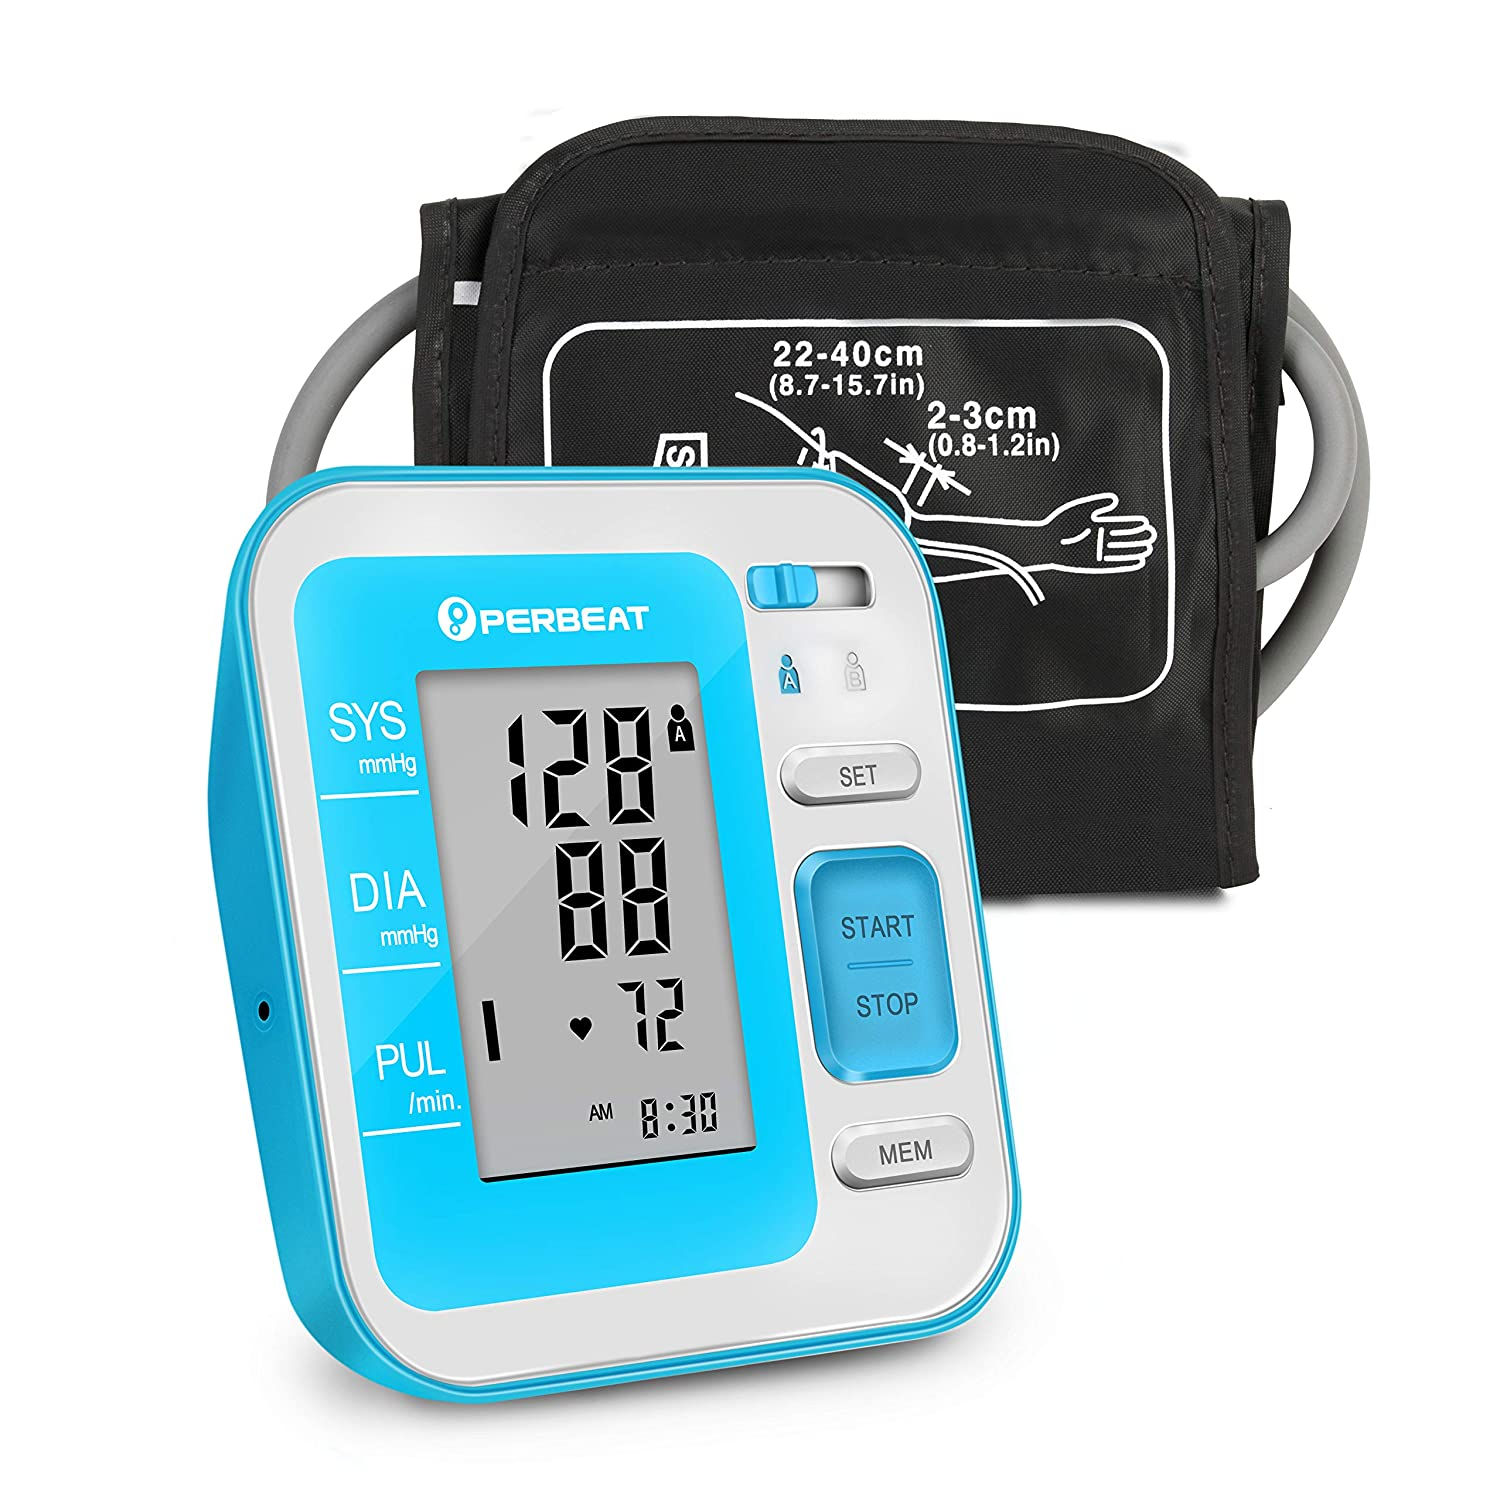 Digital Upper Arm Blood Pressure Monitor by PERBEAT, Fully Automatic BP Machine Fits for Standard and Extra Large Arm with Large LCD Display, 2 * 120 Memory Storage Voice Broadcast – FDA Approved